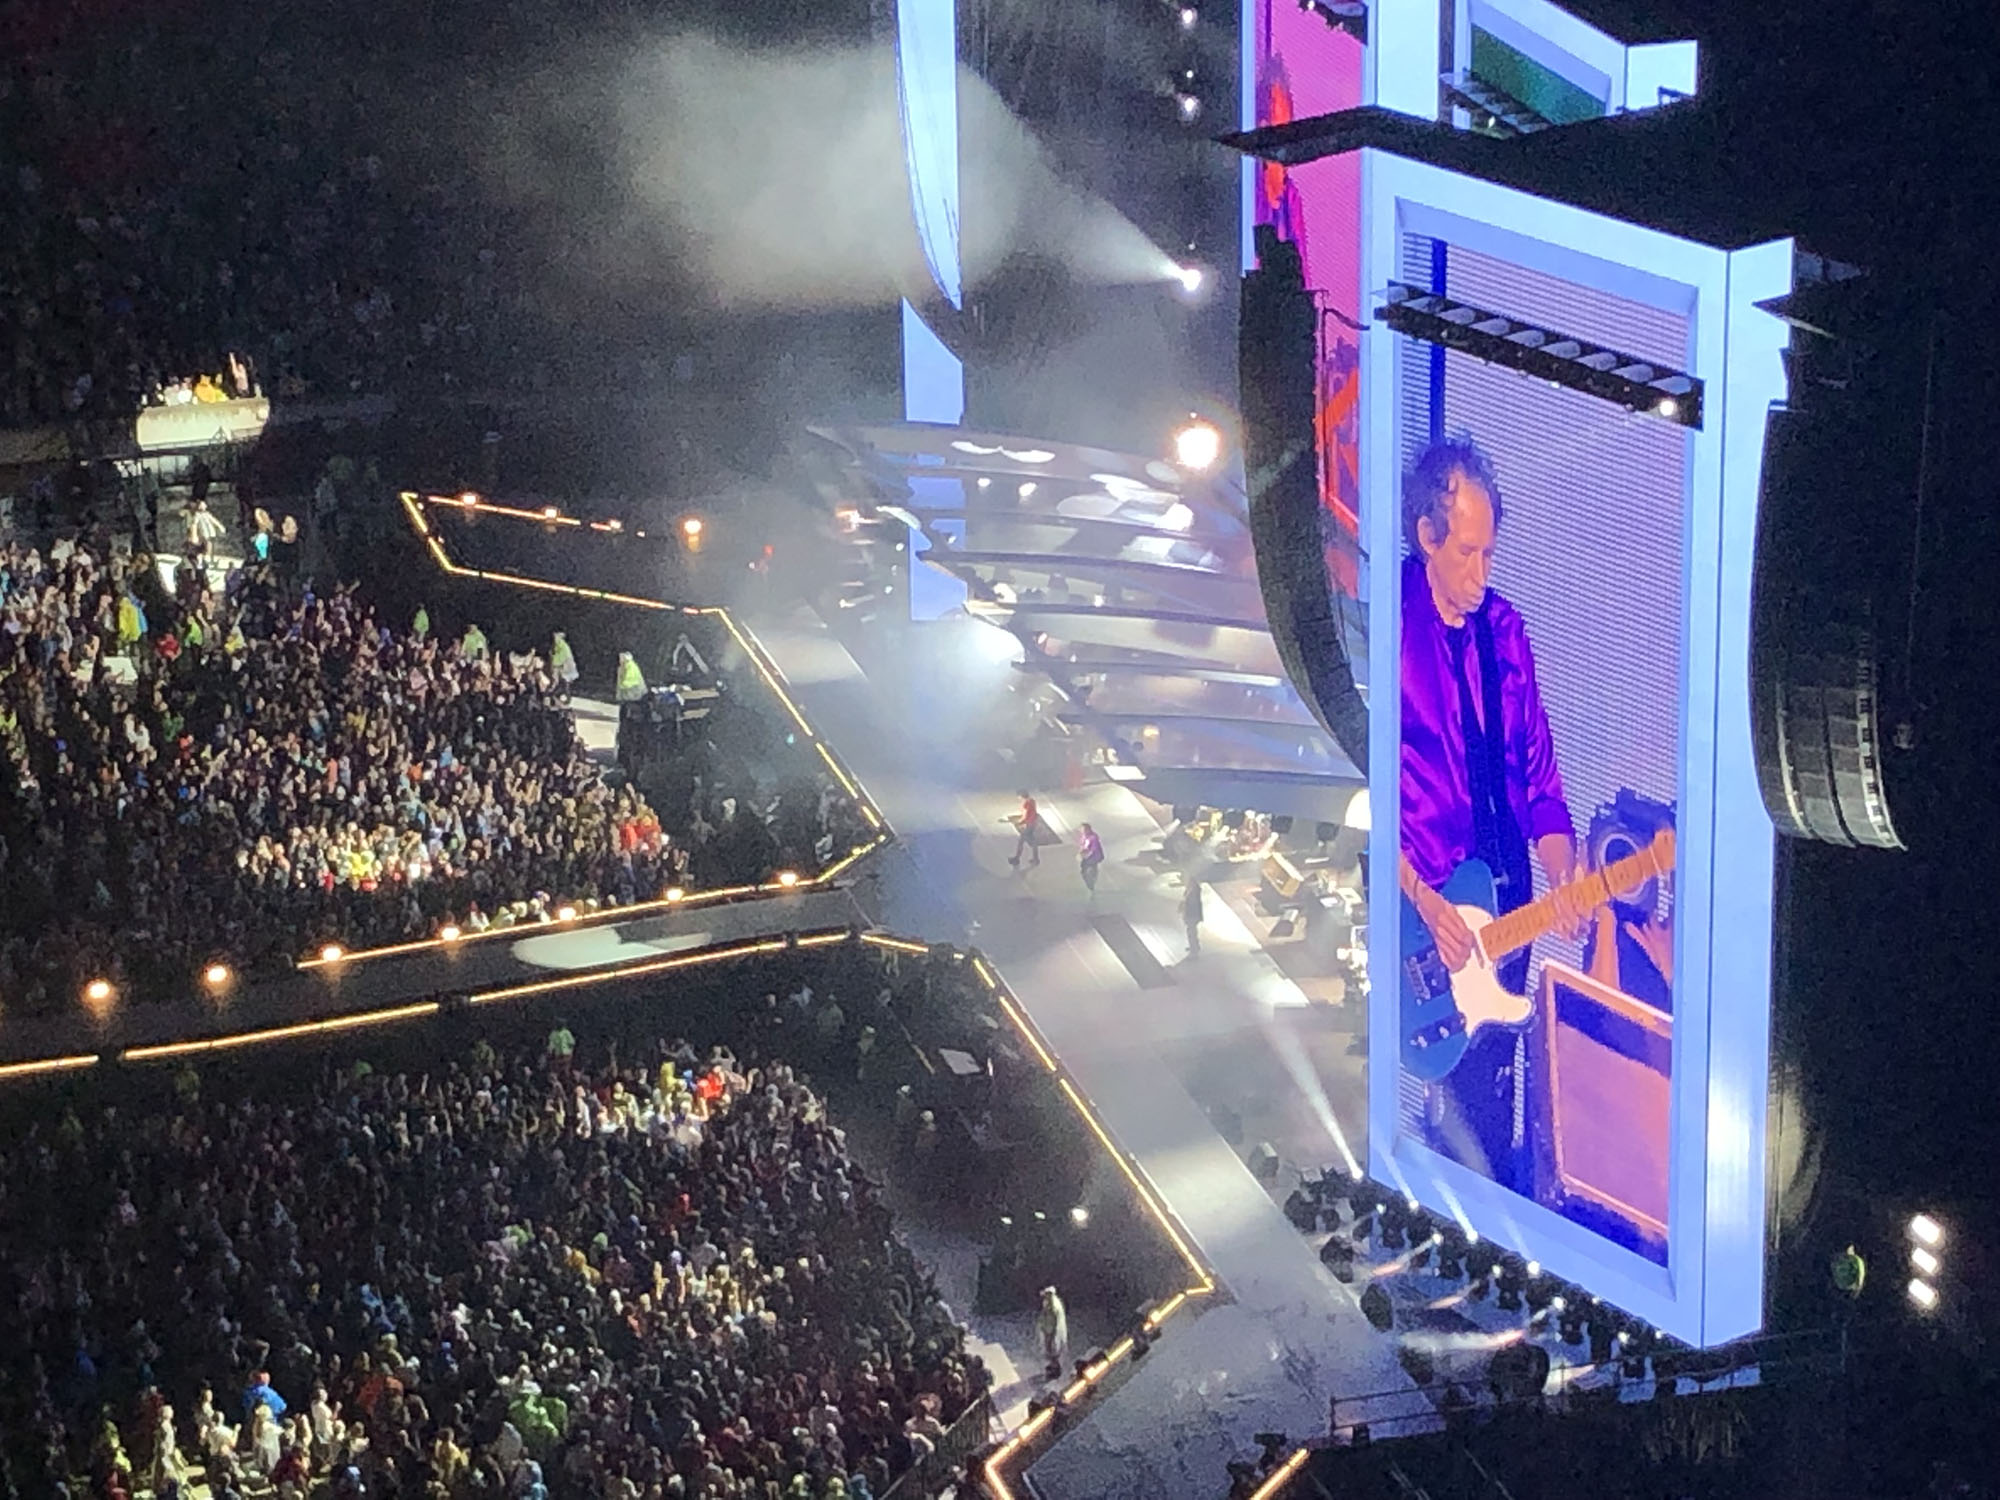 Keith Richards playing that riff last Tuesday.